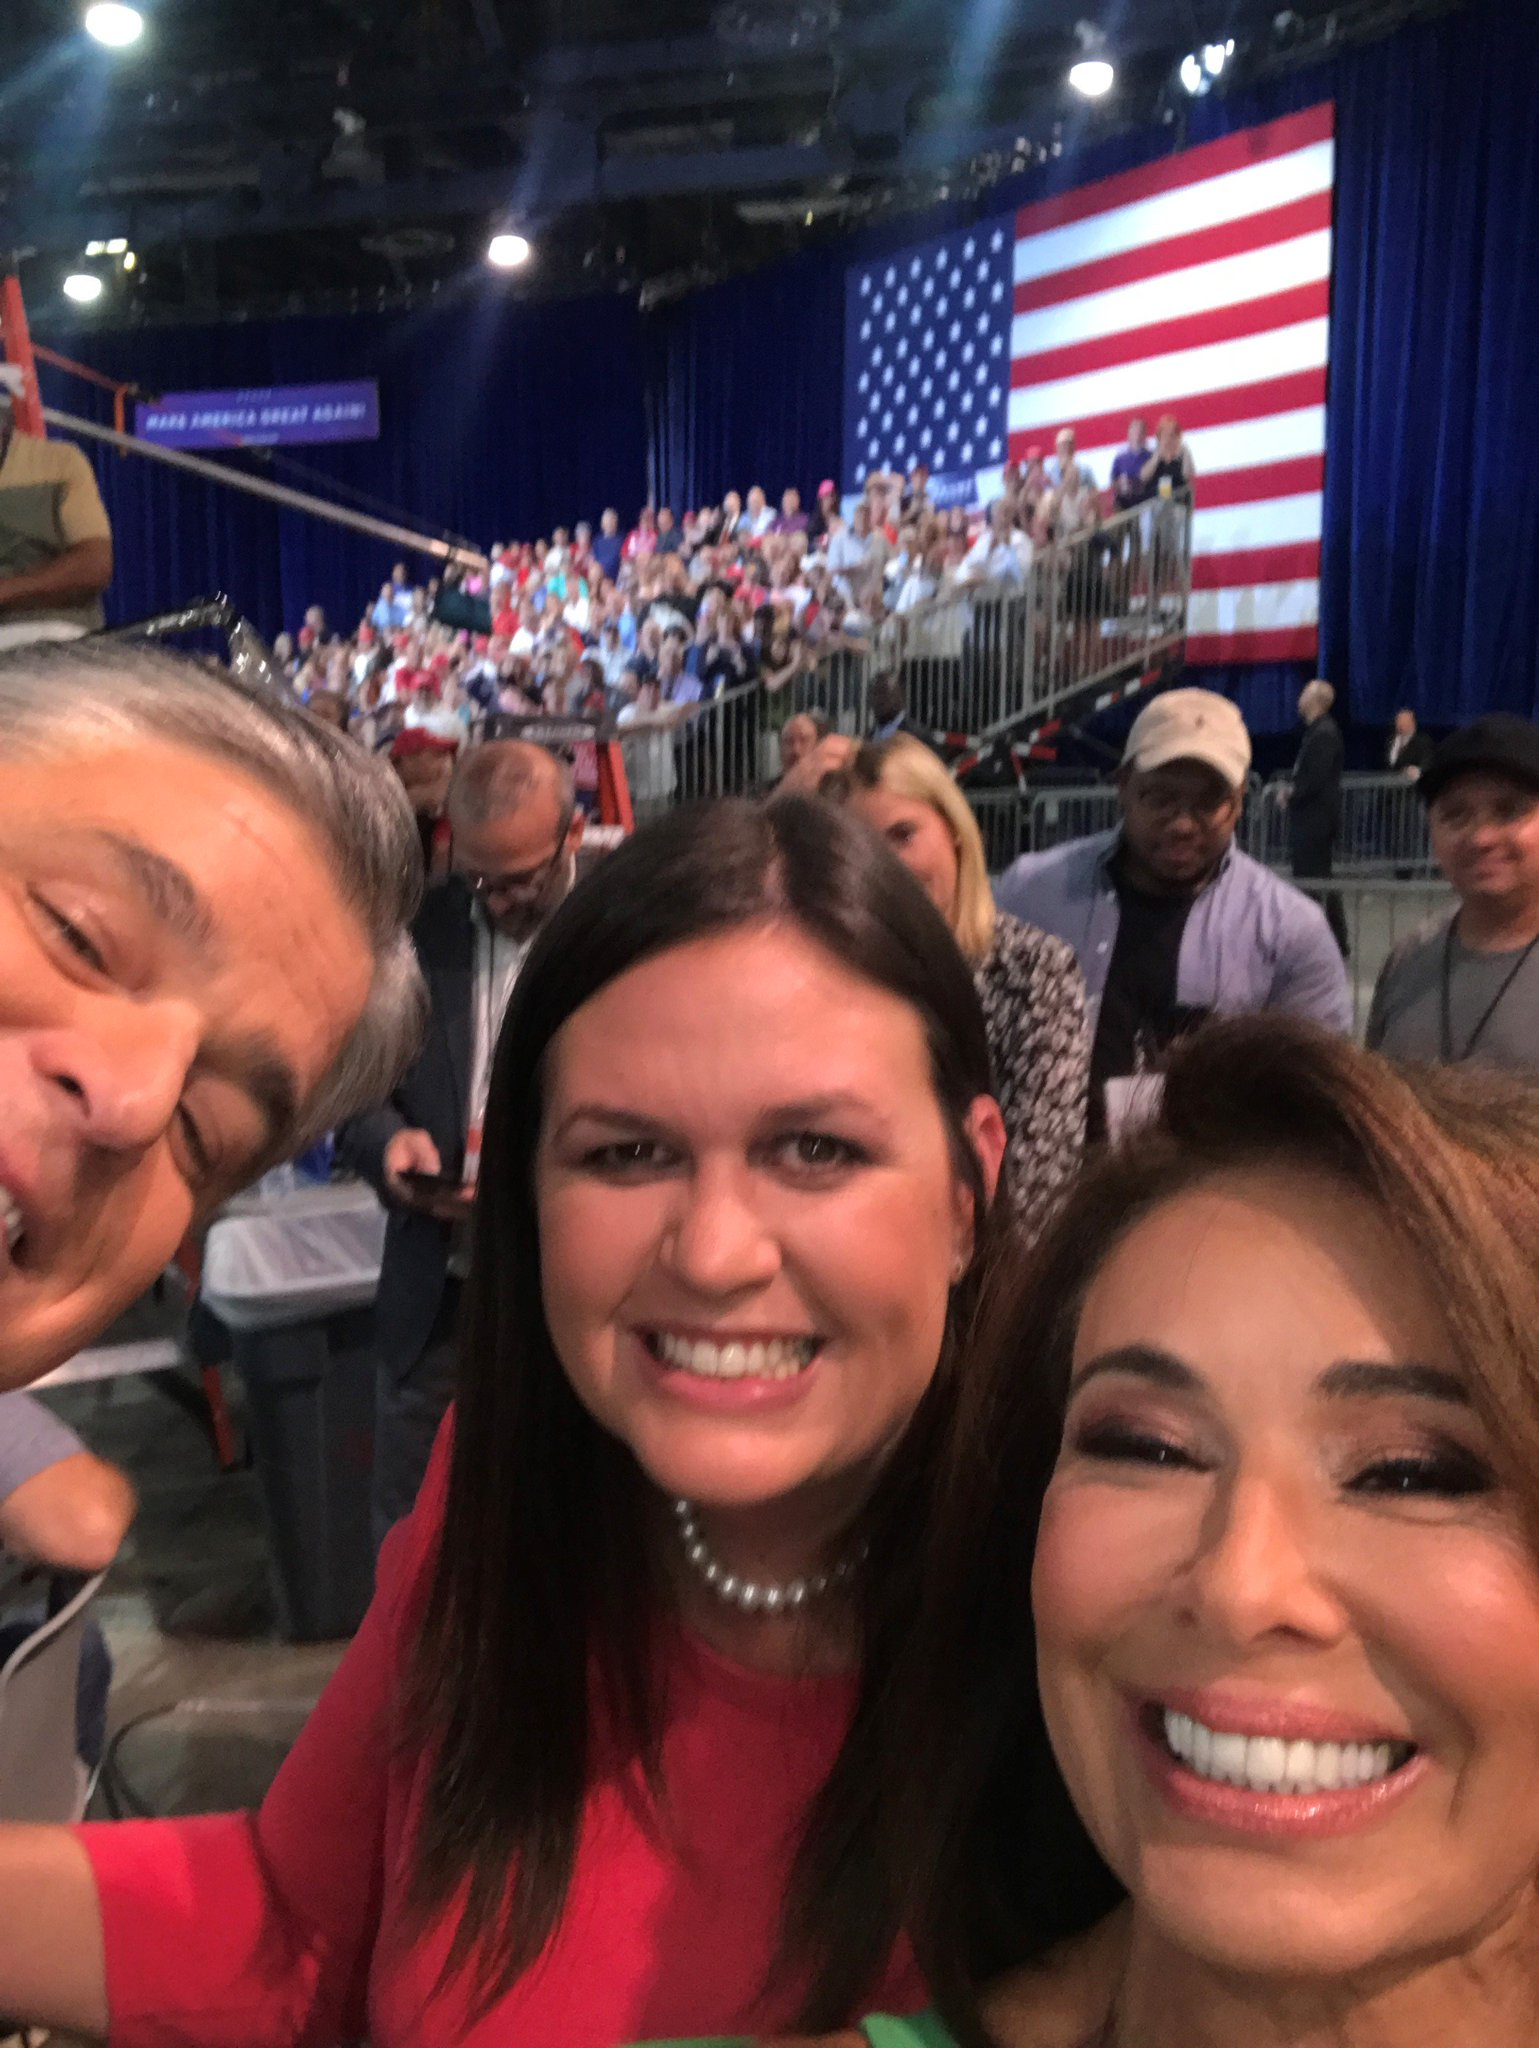 Selfie with @seanhannity & @PressSec at the @realDonaldTrump Las Vegas rally! https://t.co/Ic4AWFuNS3